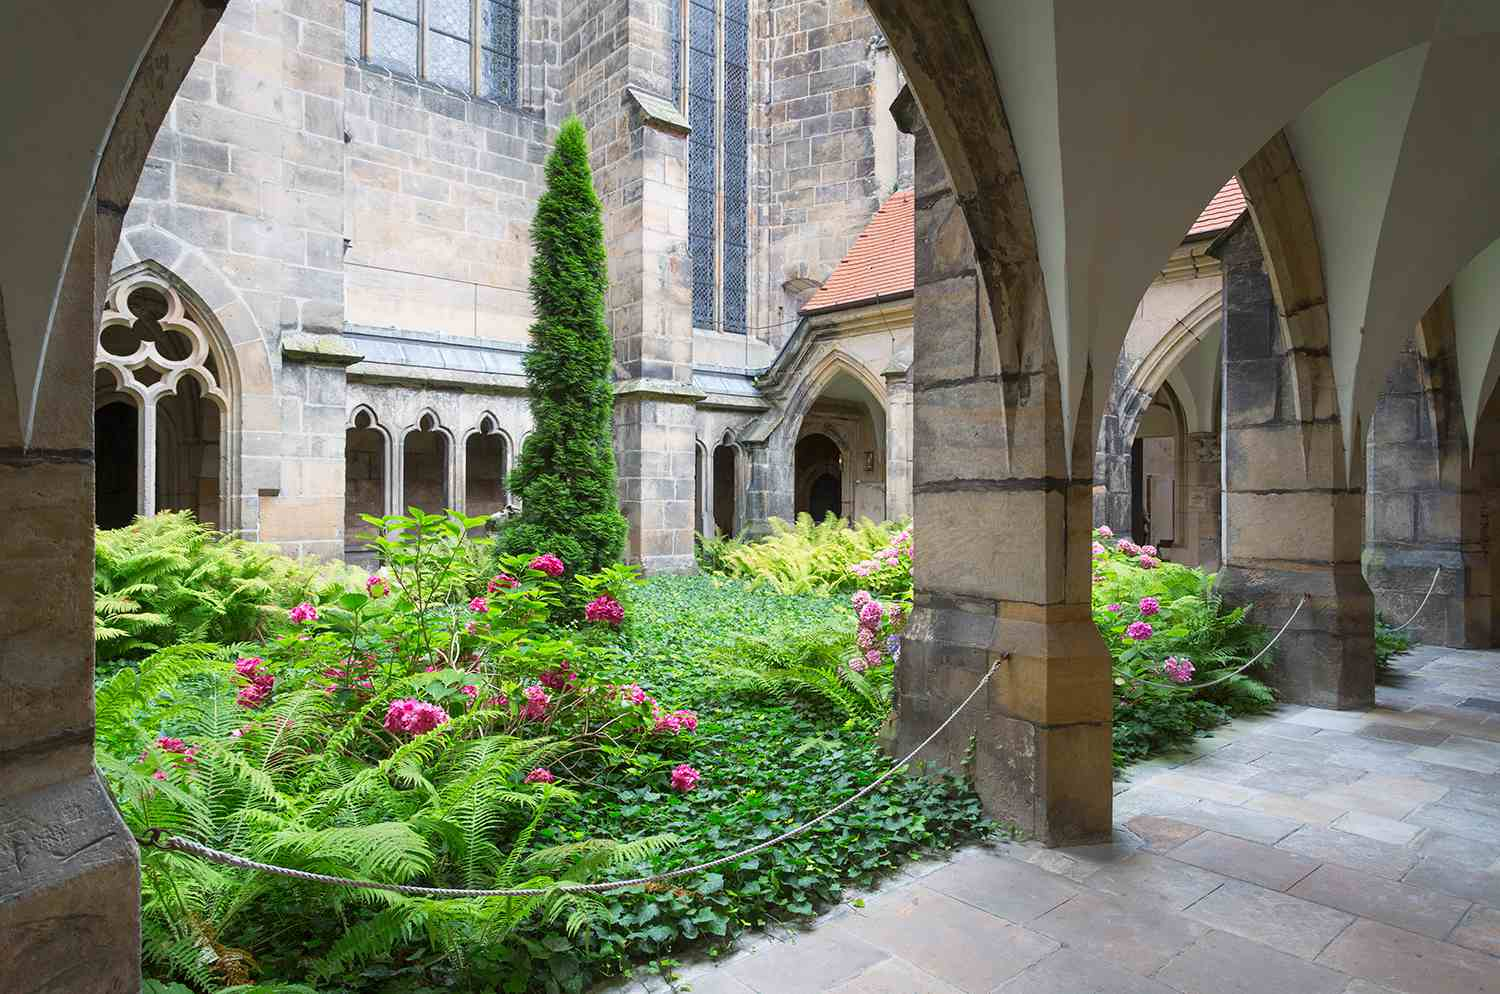 Garden at a cathedral